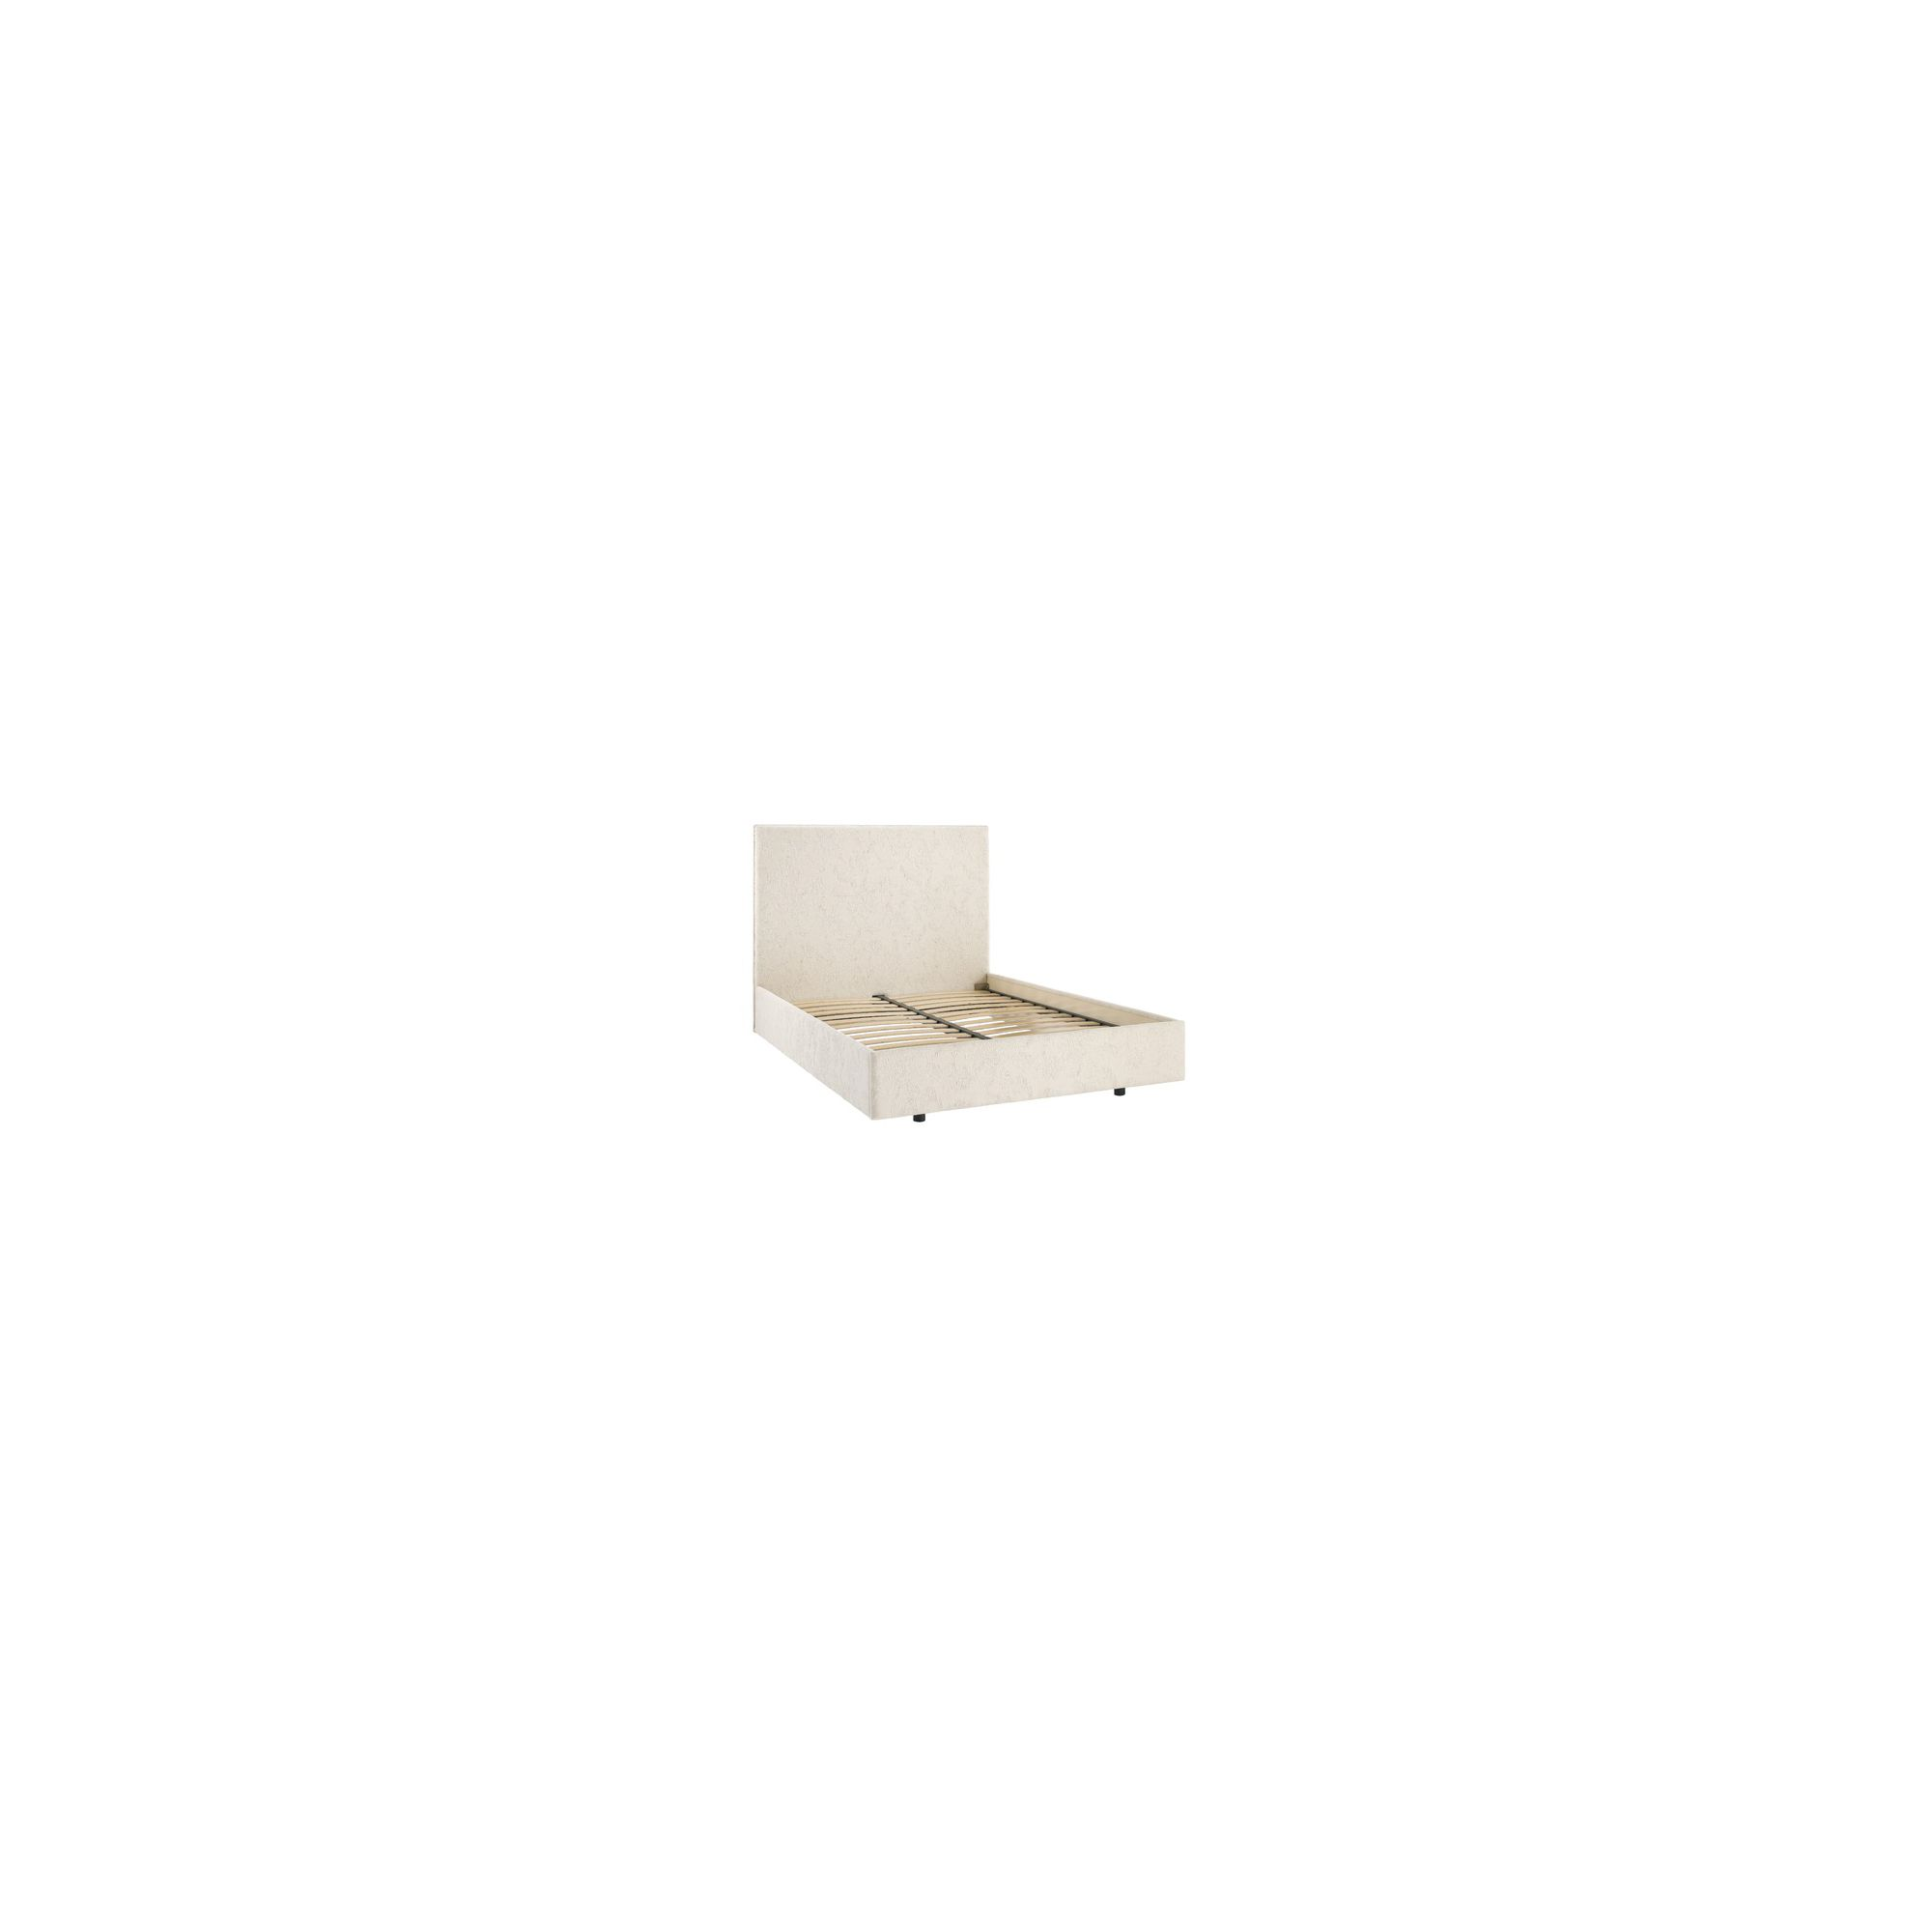 Swanglen St. Tropez Ottoman Bedstead - King / Chelsea Almond at Tescos Direct